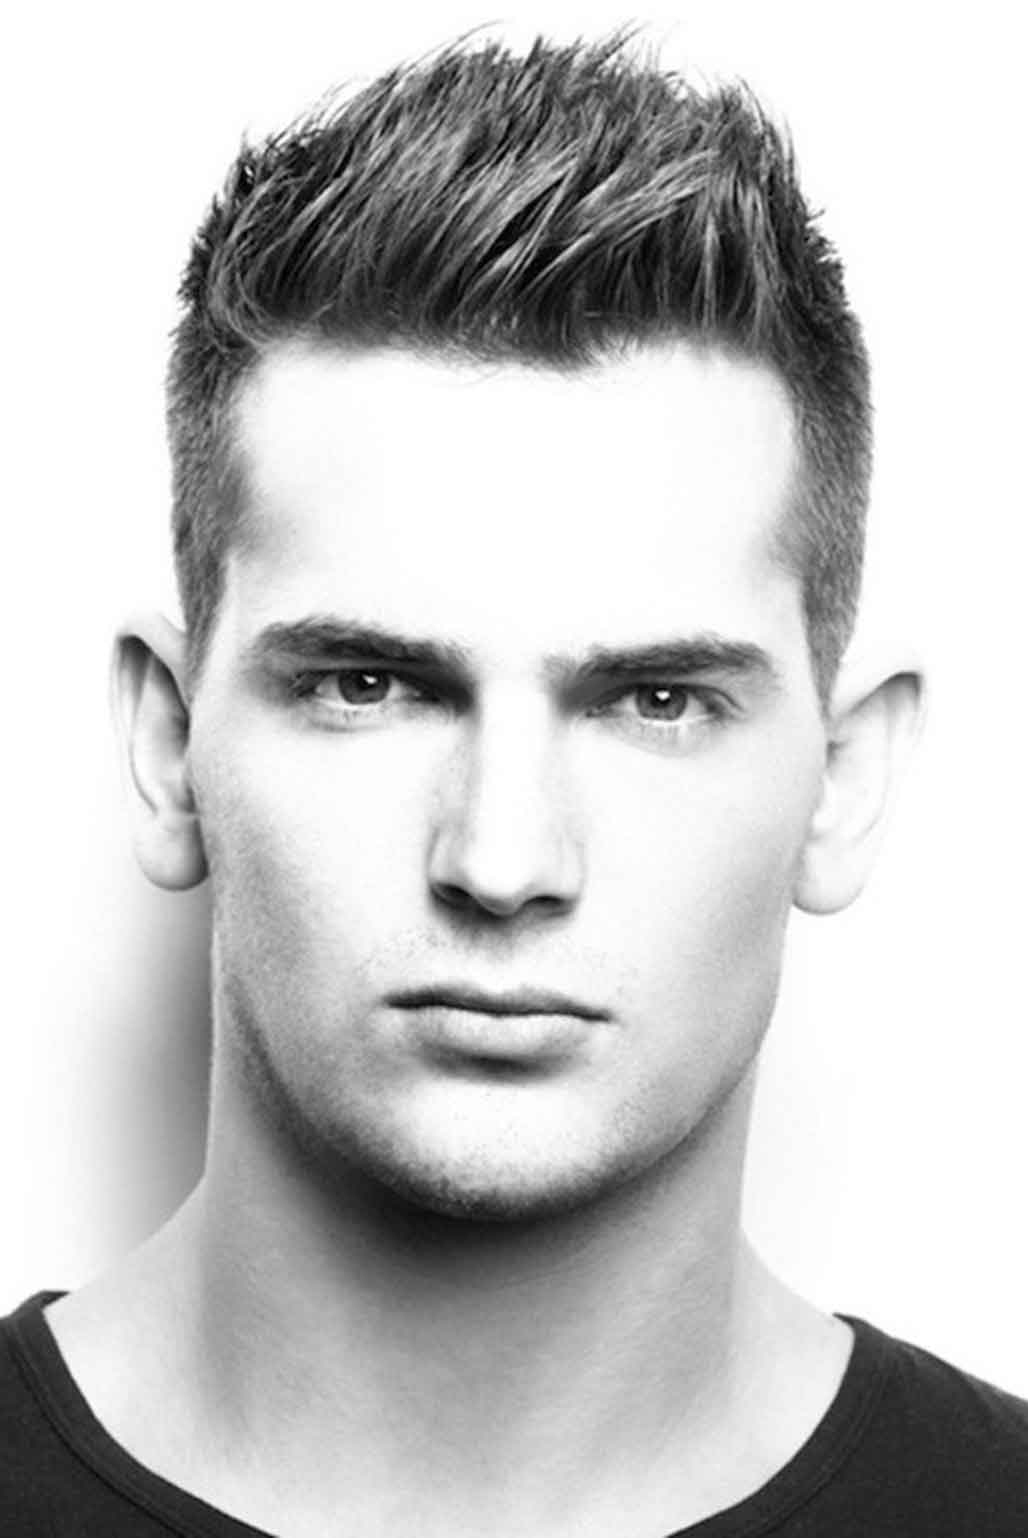 Which Face Shape Are You? - Men's Style Australia intended for Haircut For Square Face Guys